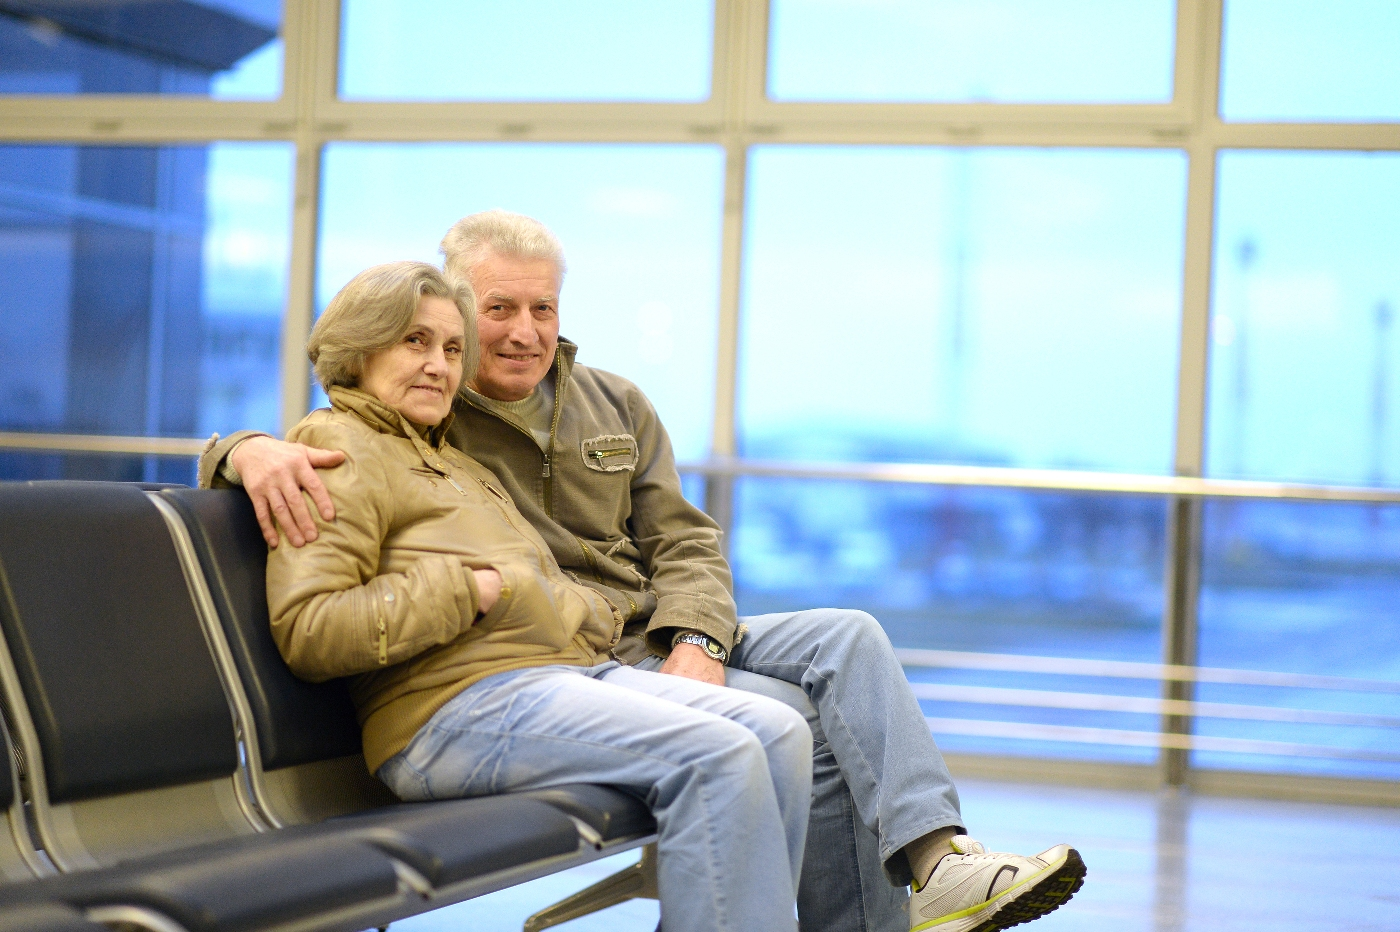 Senior Travel - Senior Couple Sitting At Their Gate In The Airport